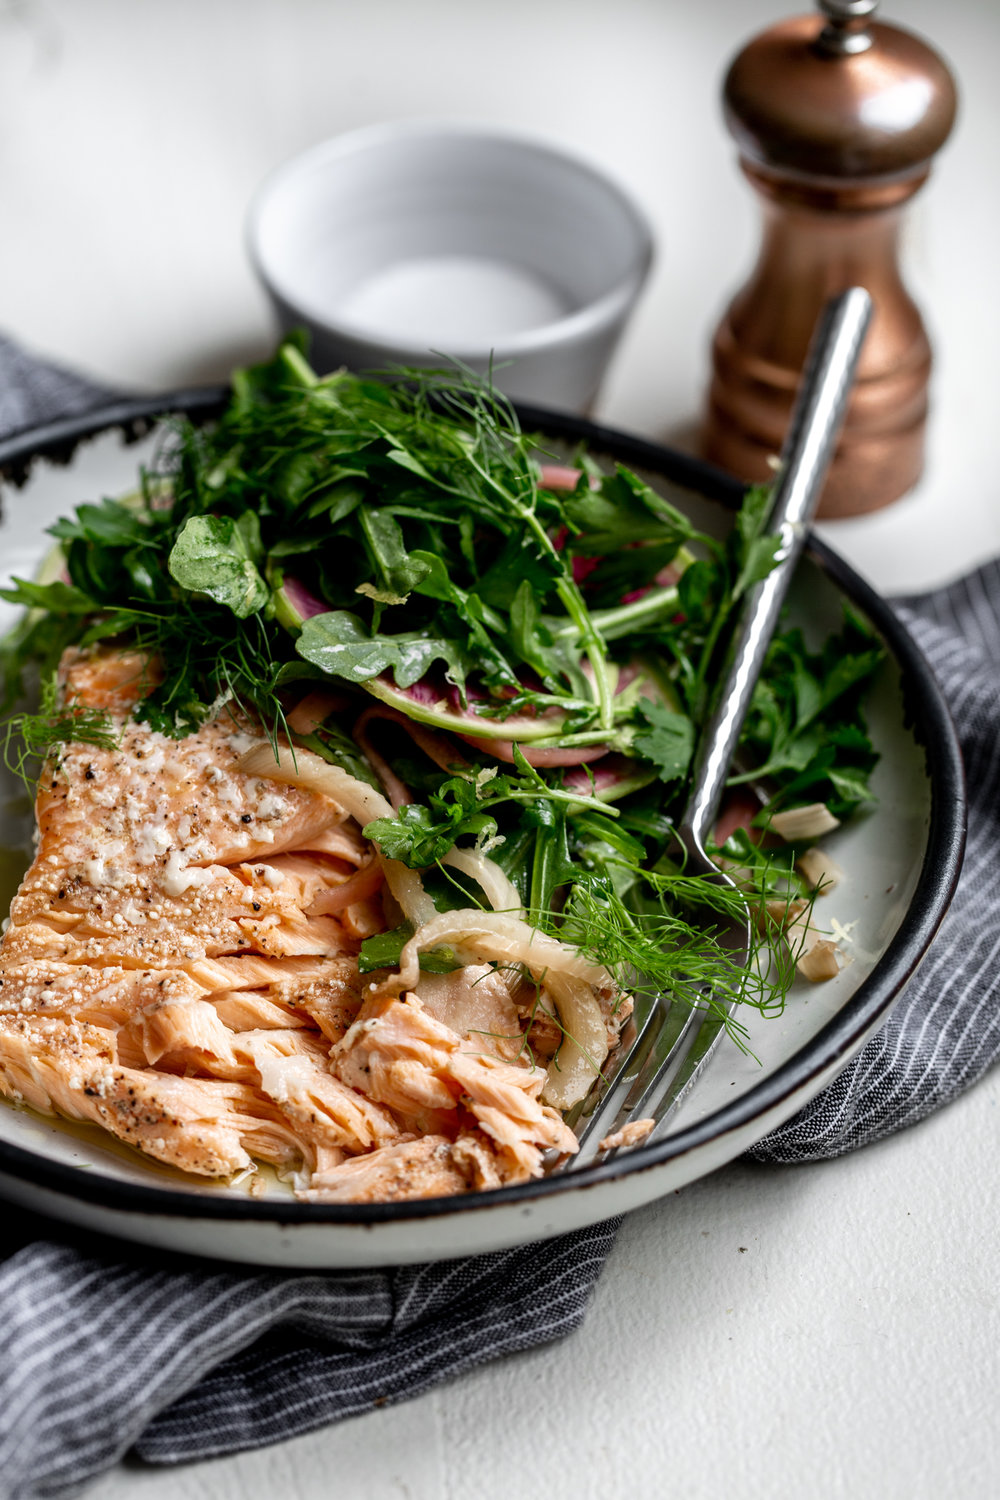 Olive Oil Slow-Poached Salmon with Fennel and Lemon Arugula Herb Salad-28.jpg